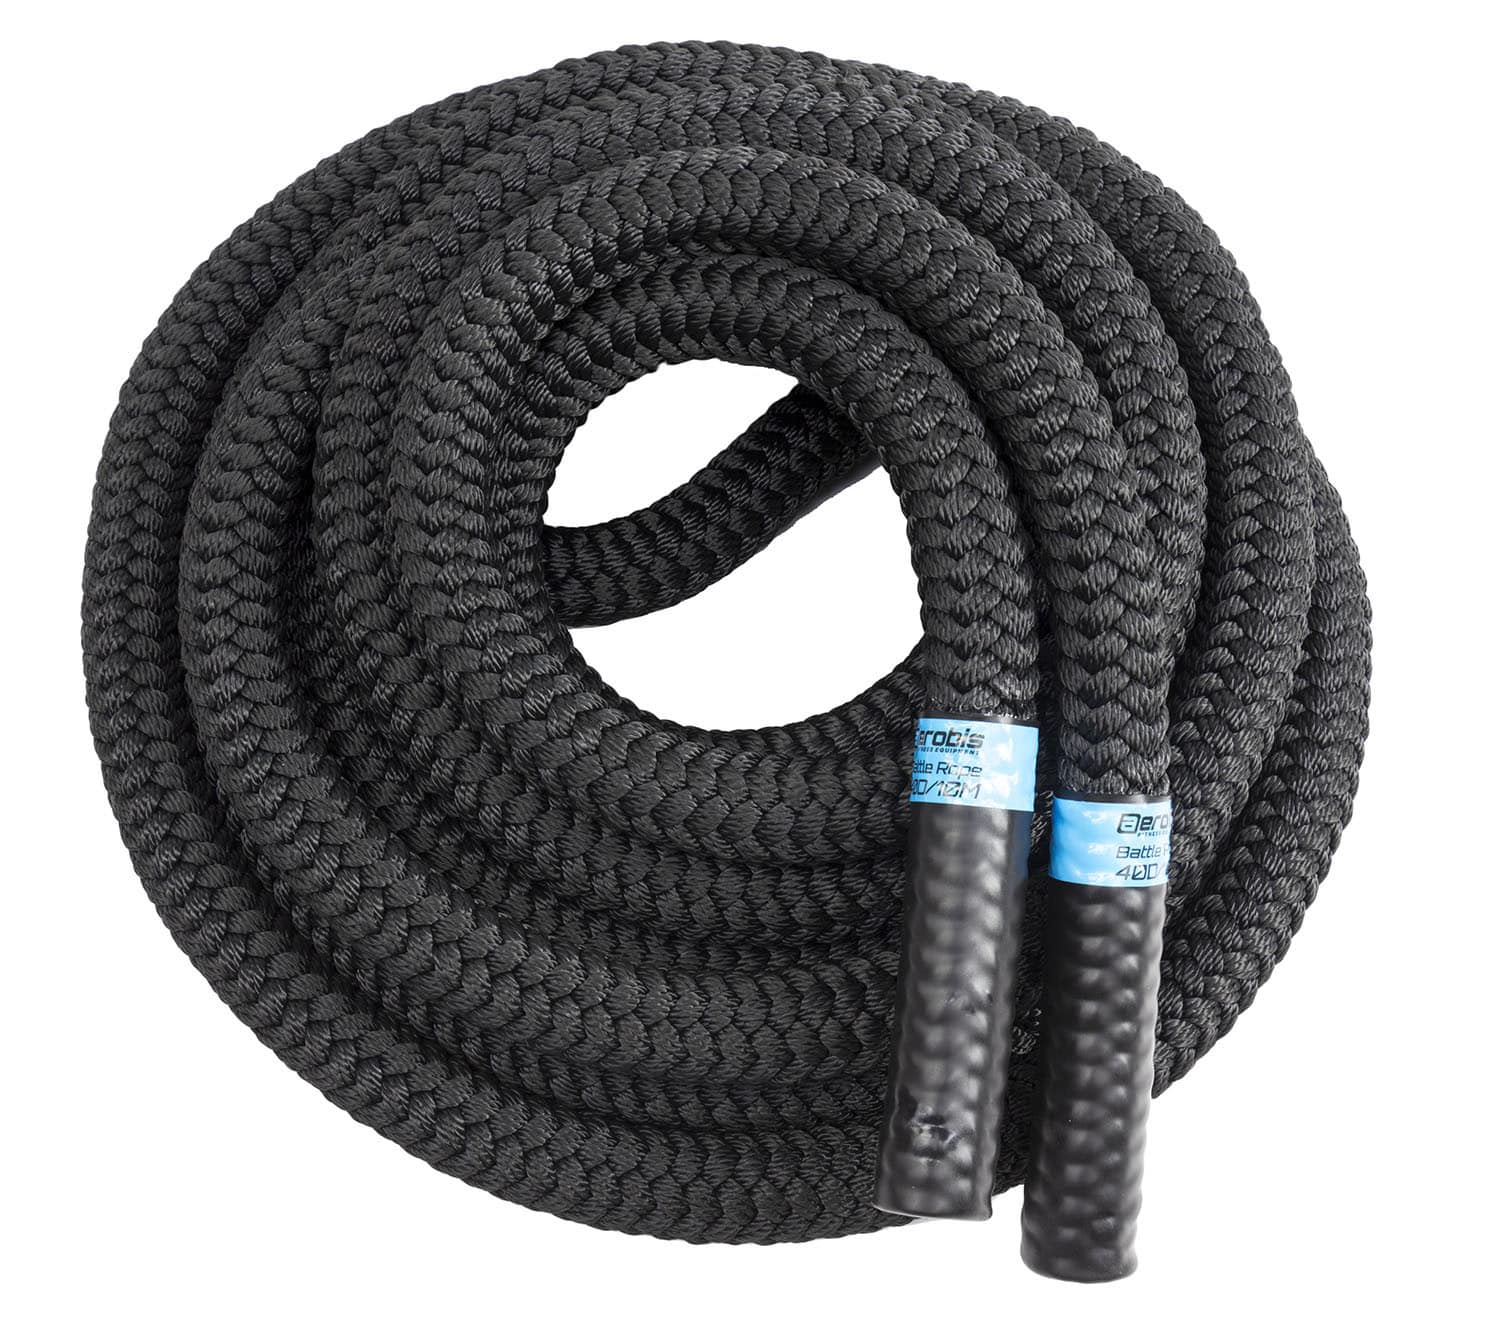 Blackthorn Battle Rope